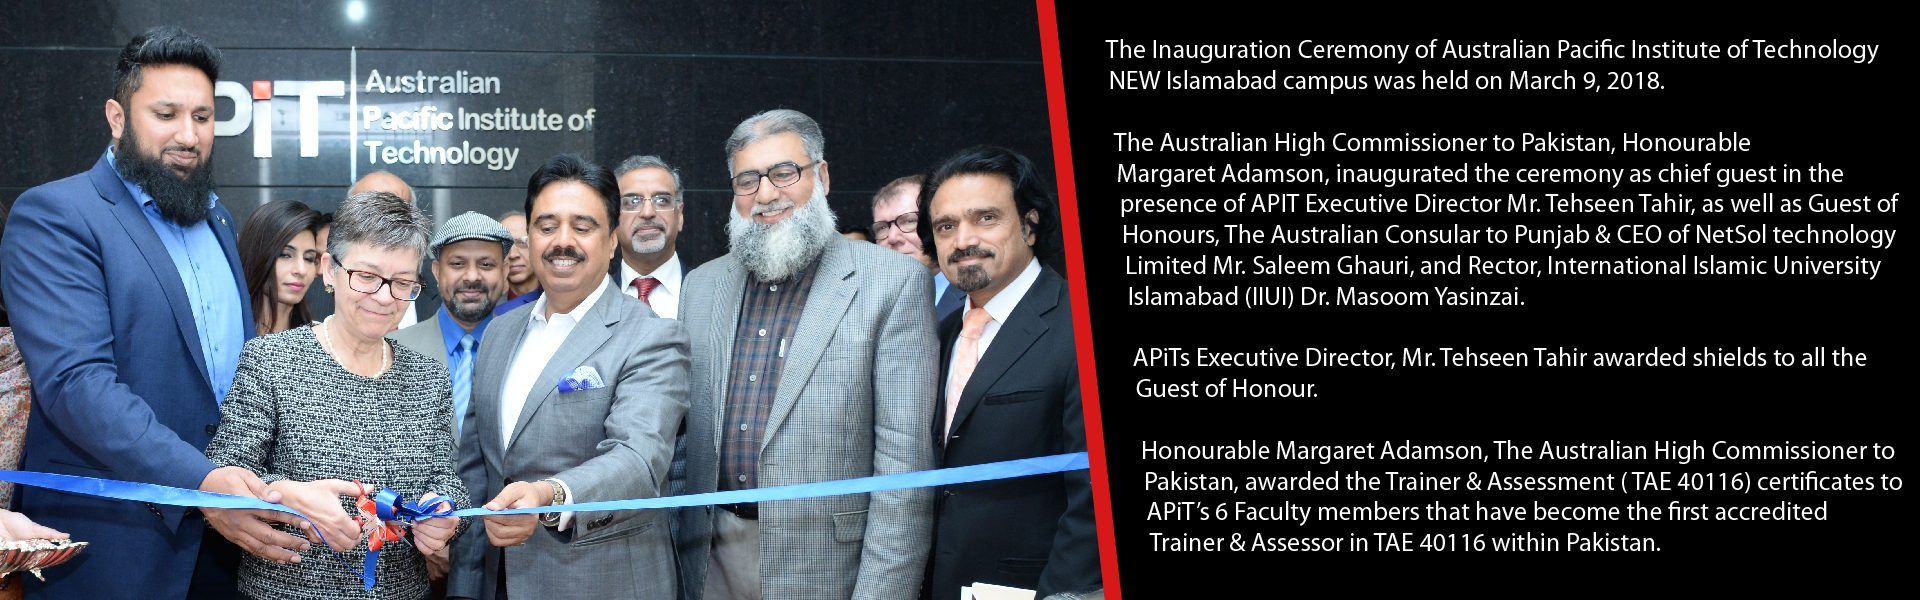 Inauguration Ceremony - APIT